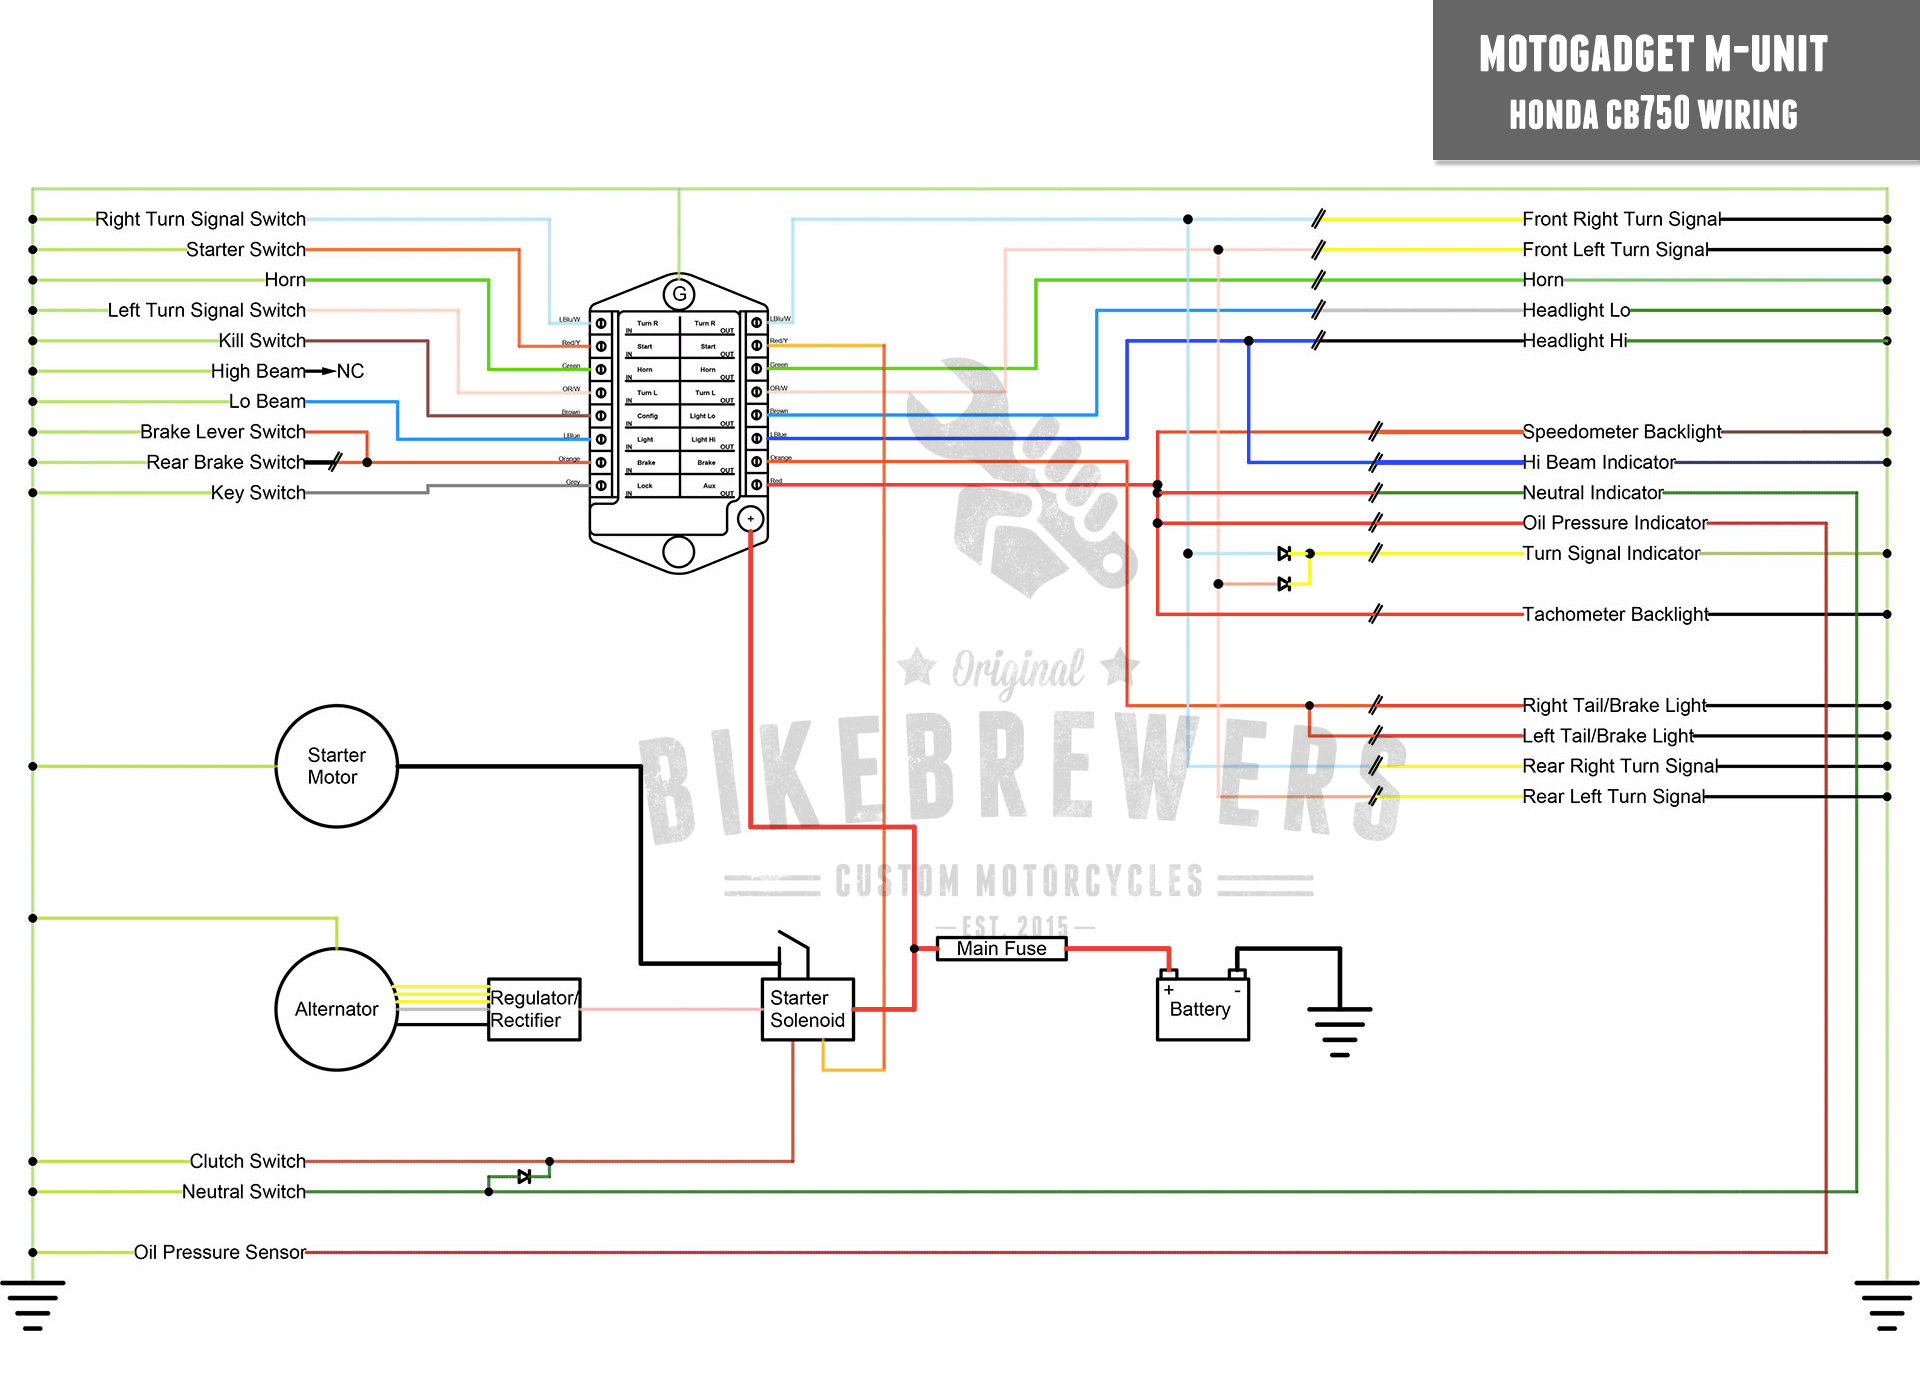 motogadget m-unit wiring | bikebrewers, Wiring diagram